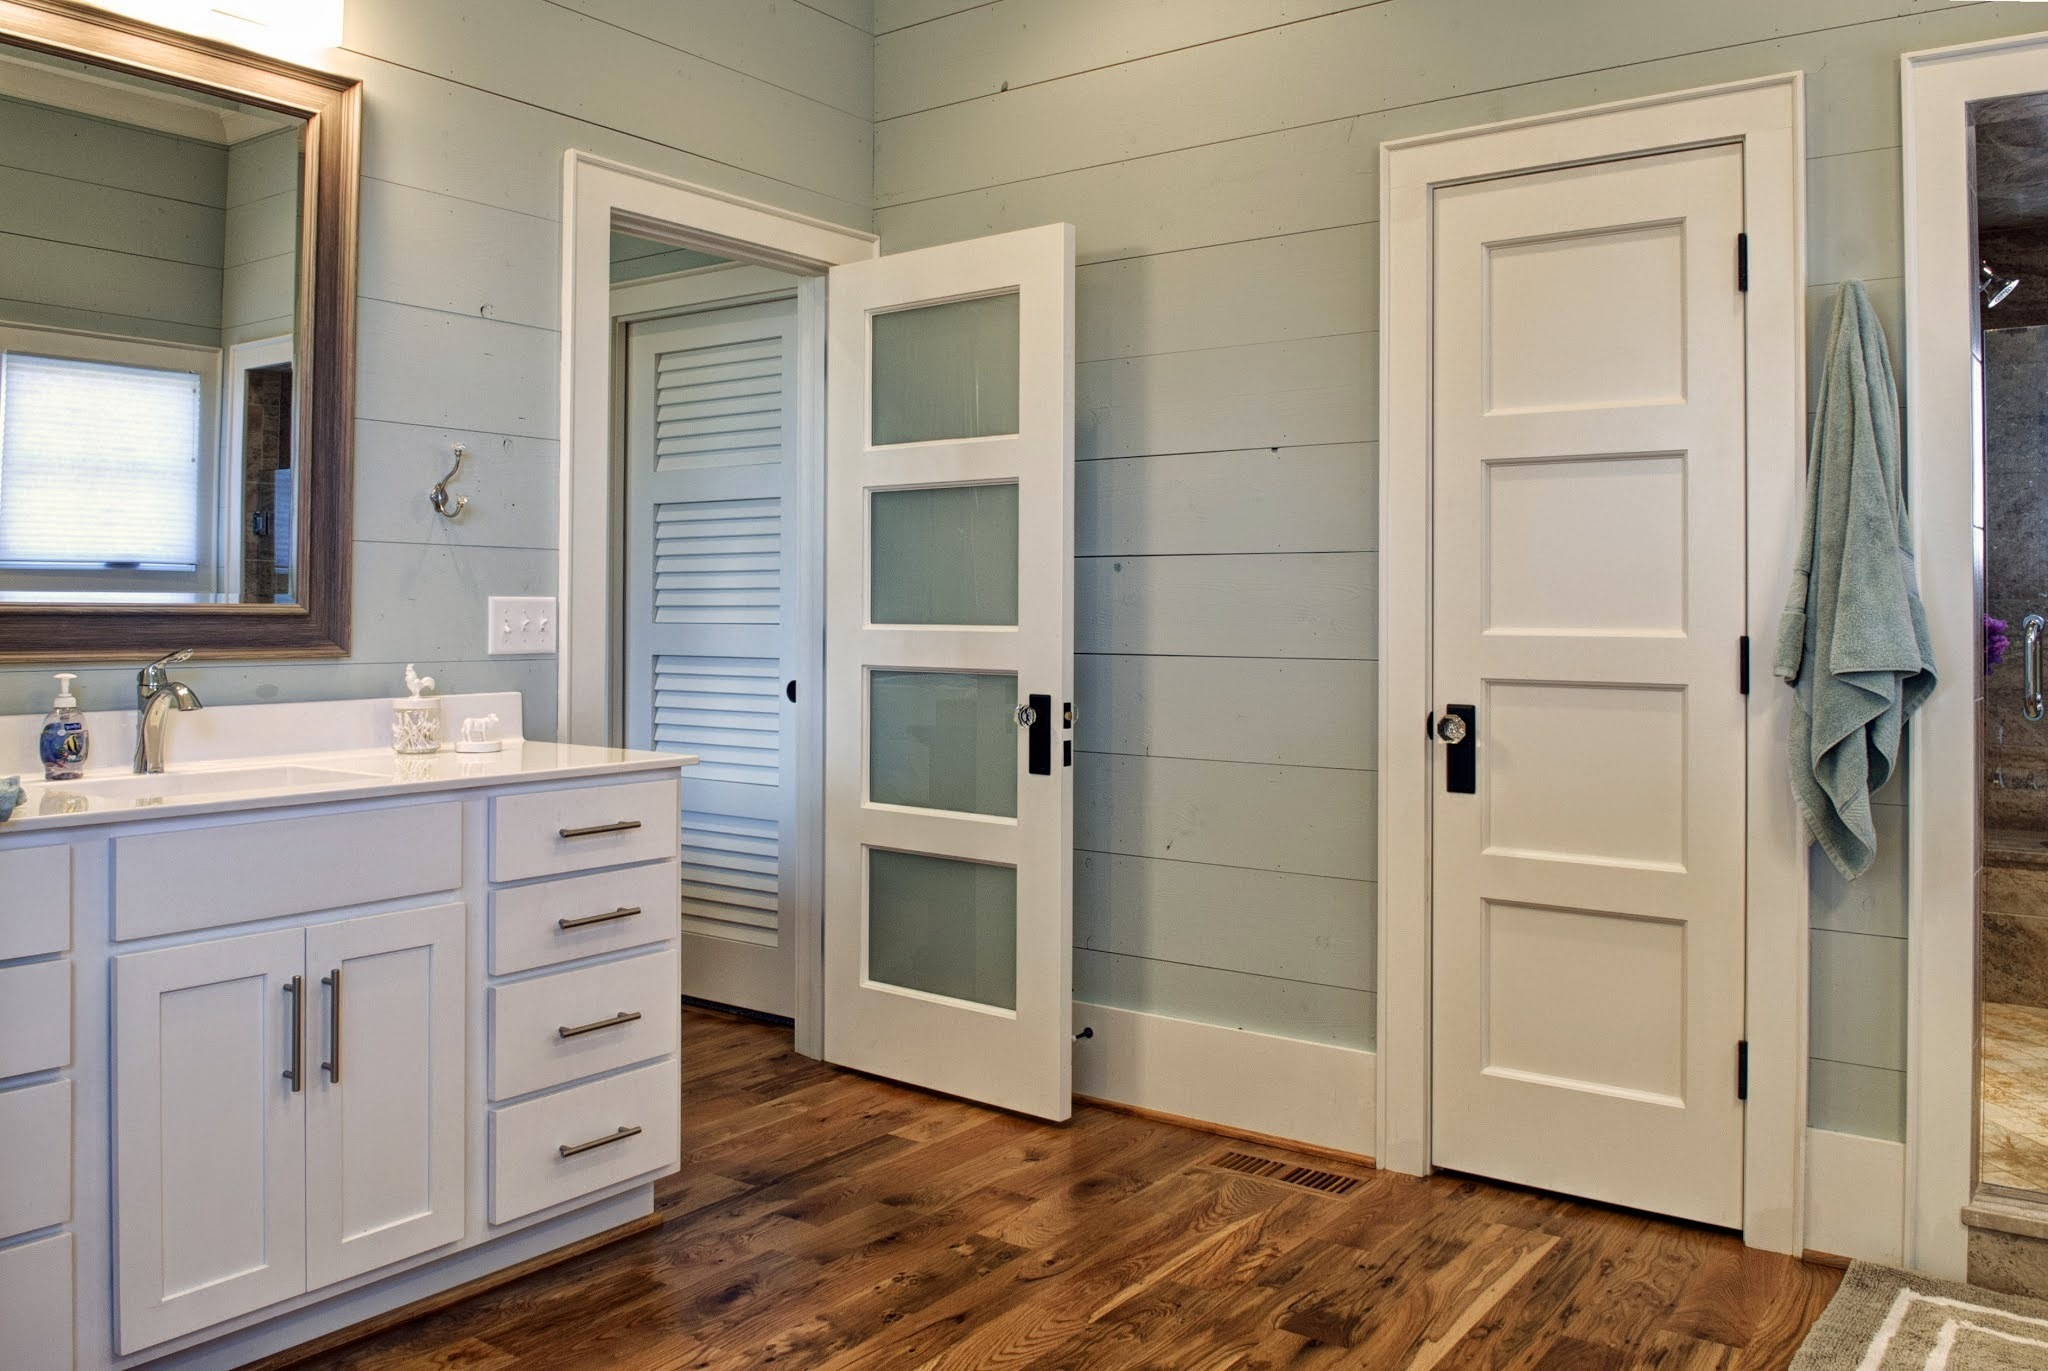 White interior doors with oak trim - White Interior Doors With Black Handles